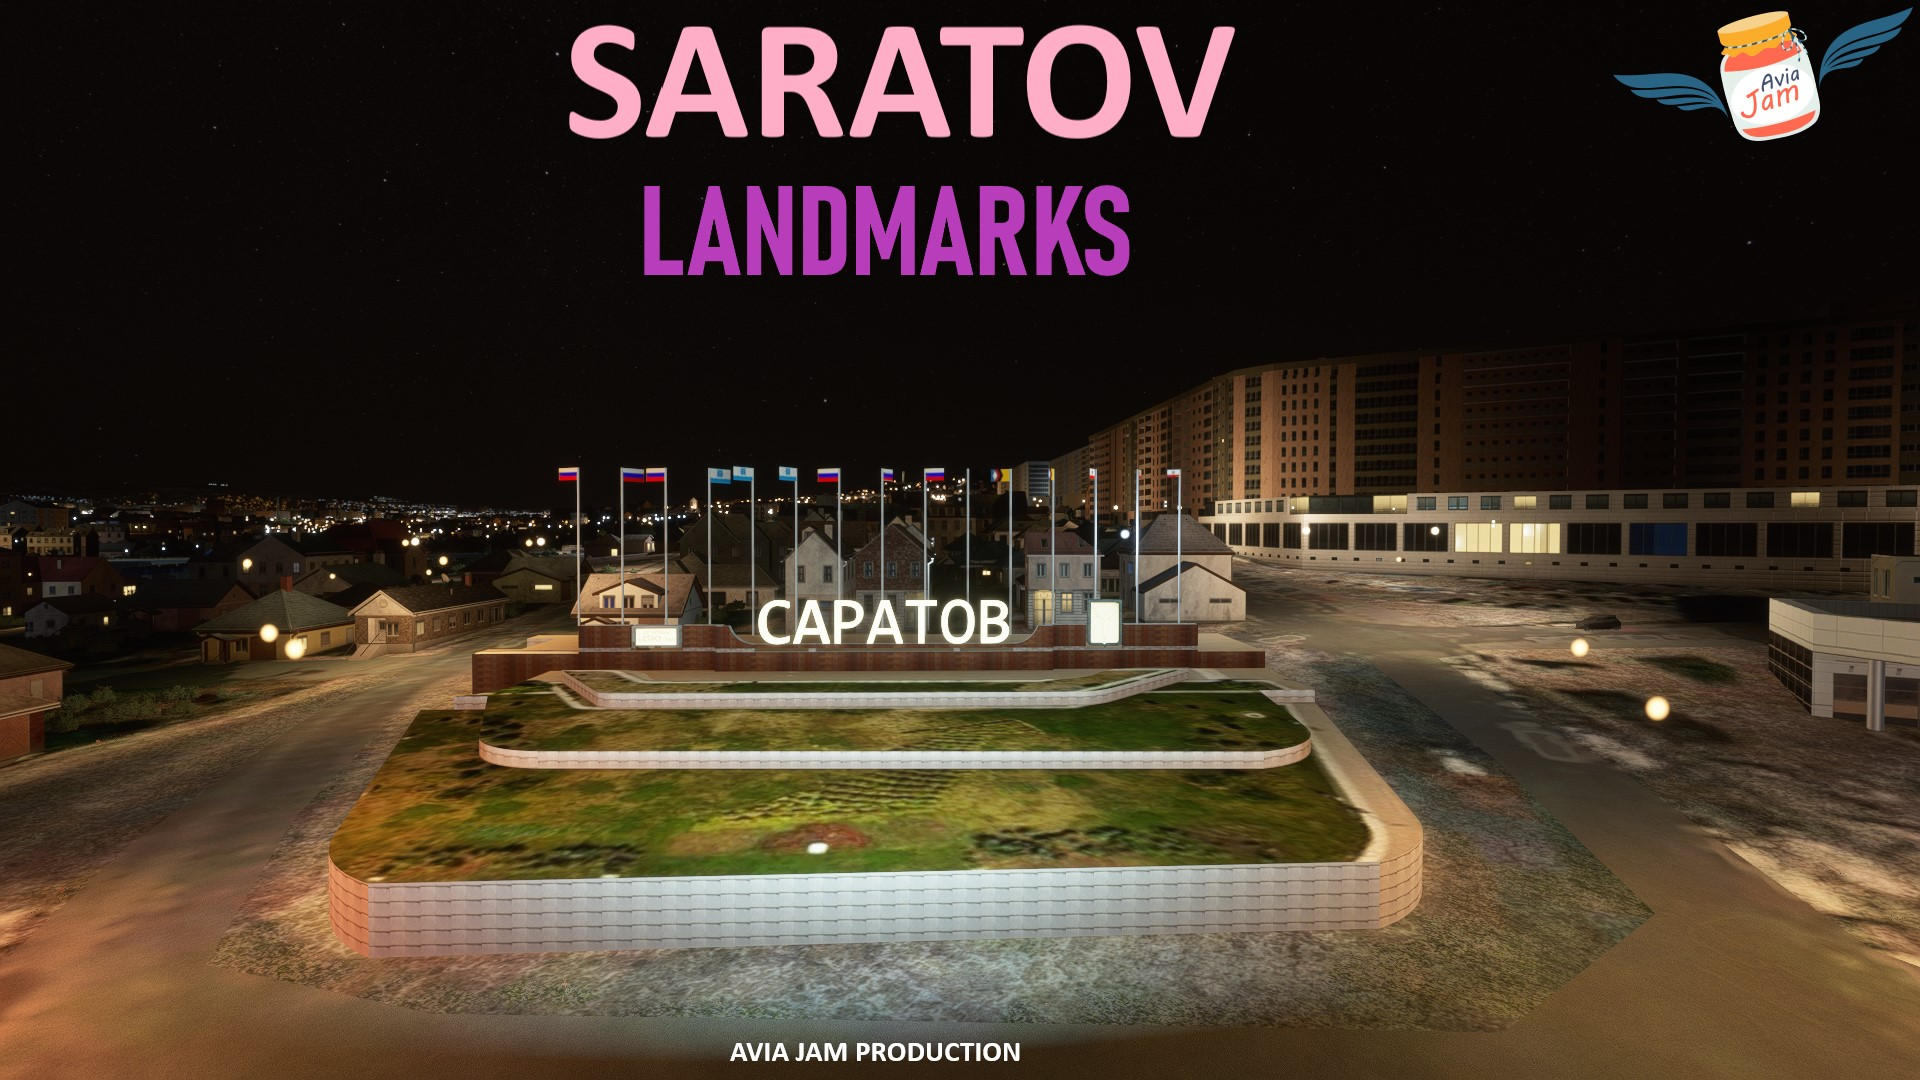 AVIAJAM PRODUCTION - VOLGOGRAD+SARATOV LANDMARKS MSFS